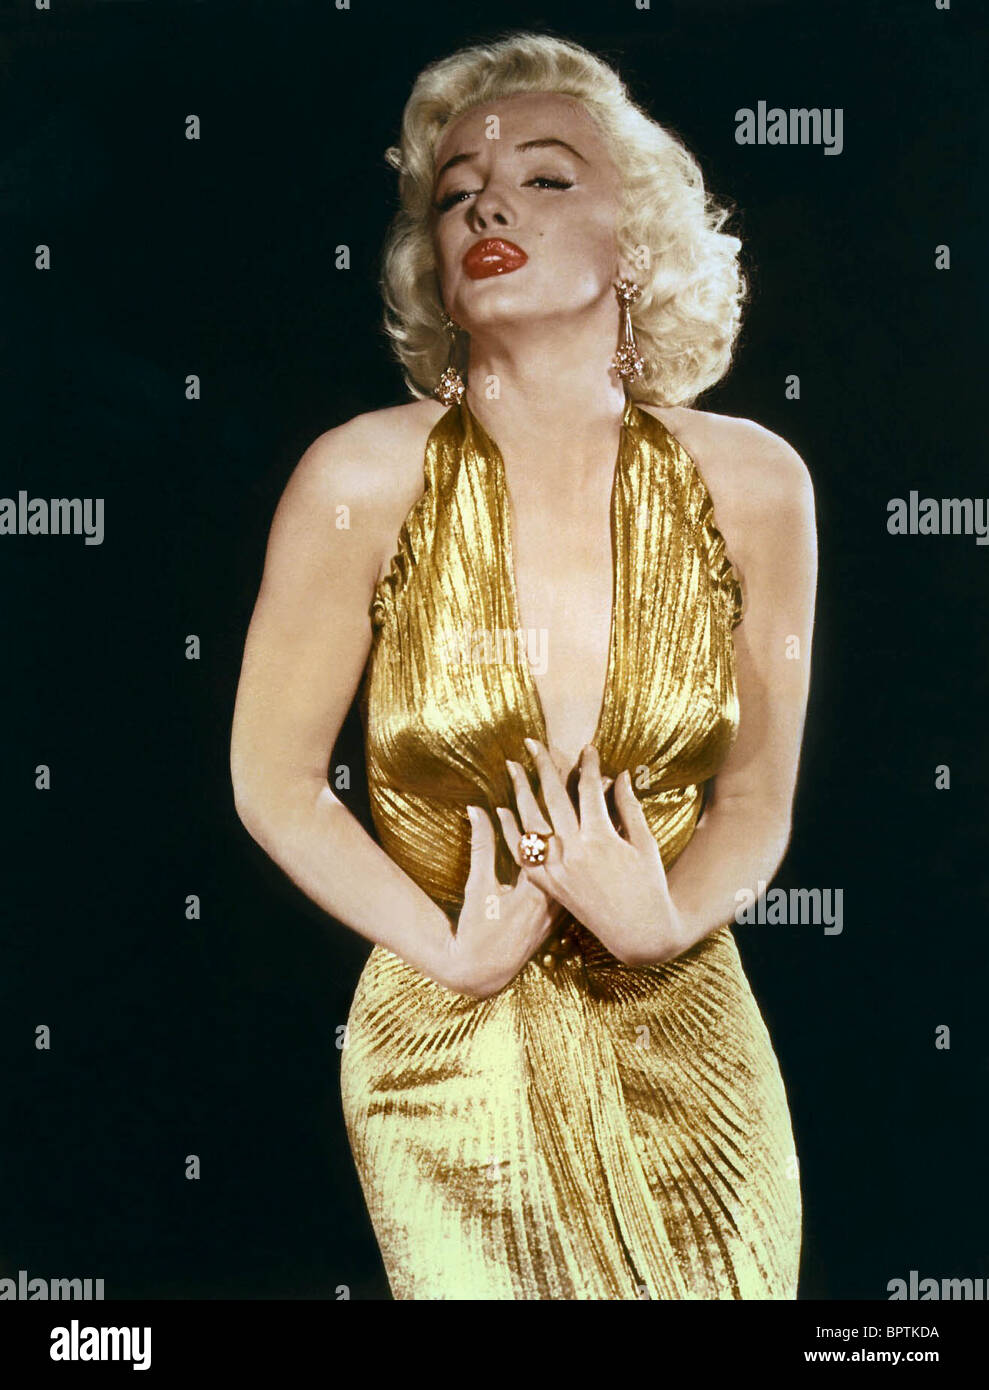 MARILYN MONROE ACTRESS (1956) - Stock Image